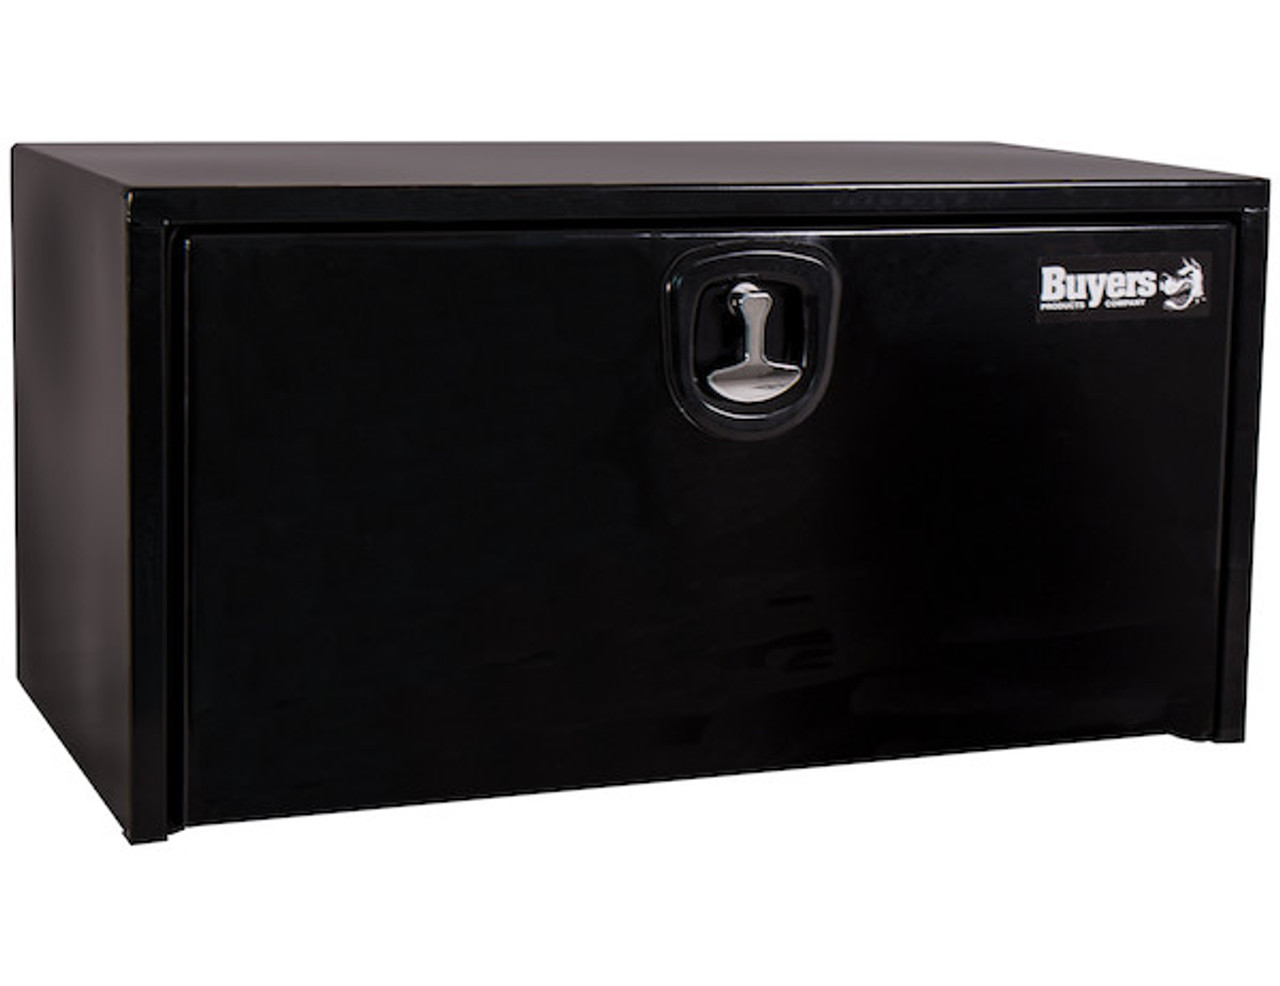 """1732303 BUYERS PRODUCTS BLACK STEEL UNDERBODY TRUCK TOOLBOX WITH 3-POINT LATCH 18""""Hx18""""Dx30""""W"""